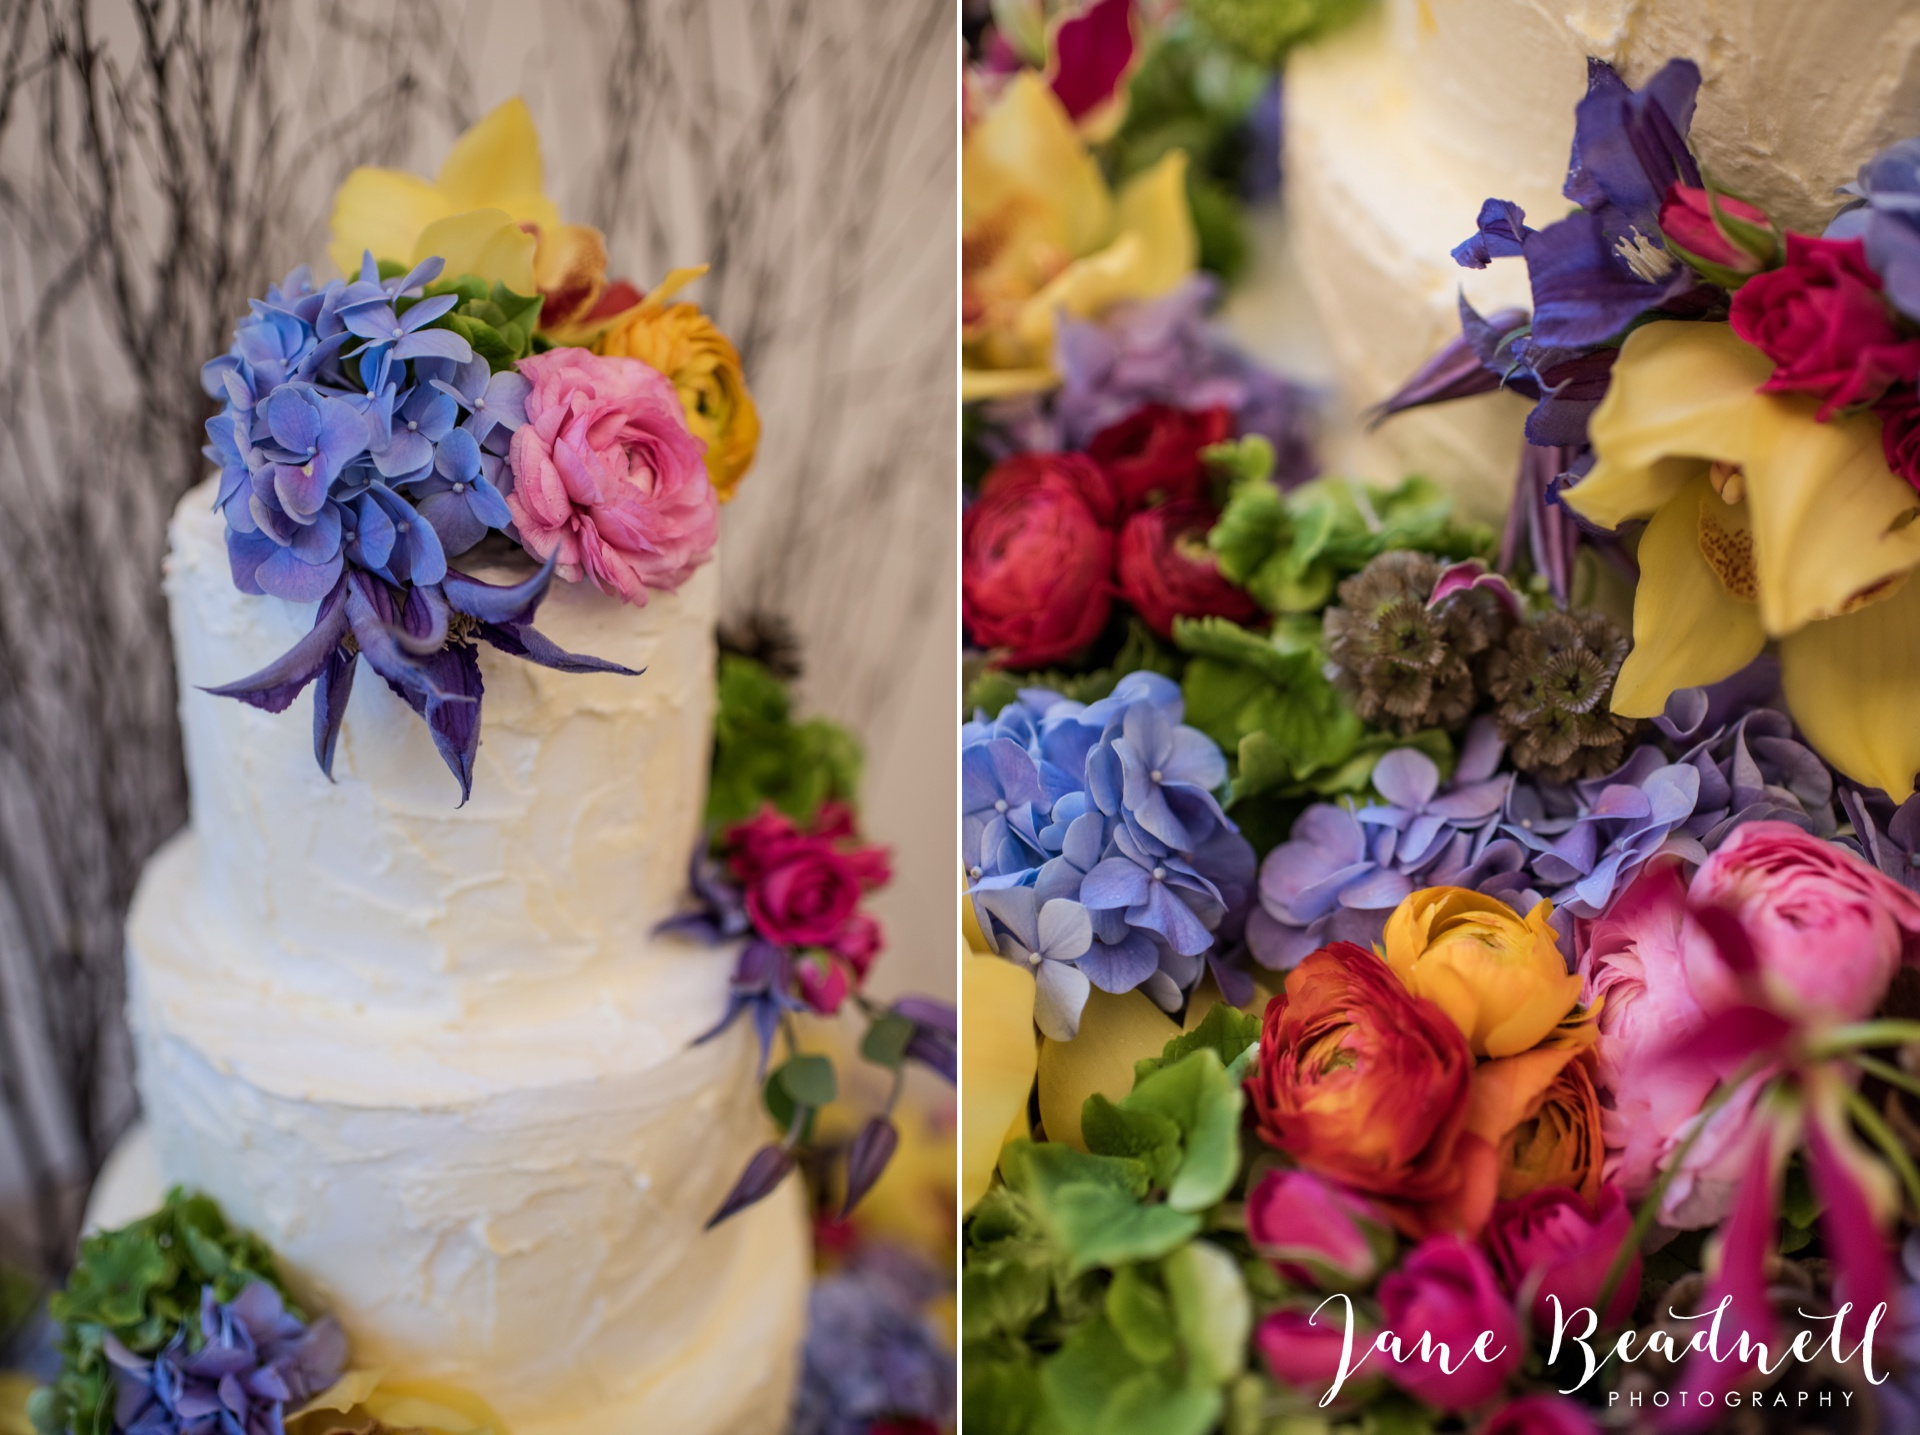 Leafy couture wedding flowers wedding photography by Jane Beadnell photography_0003